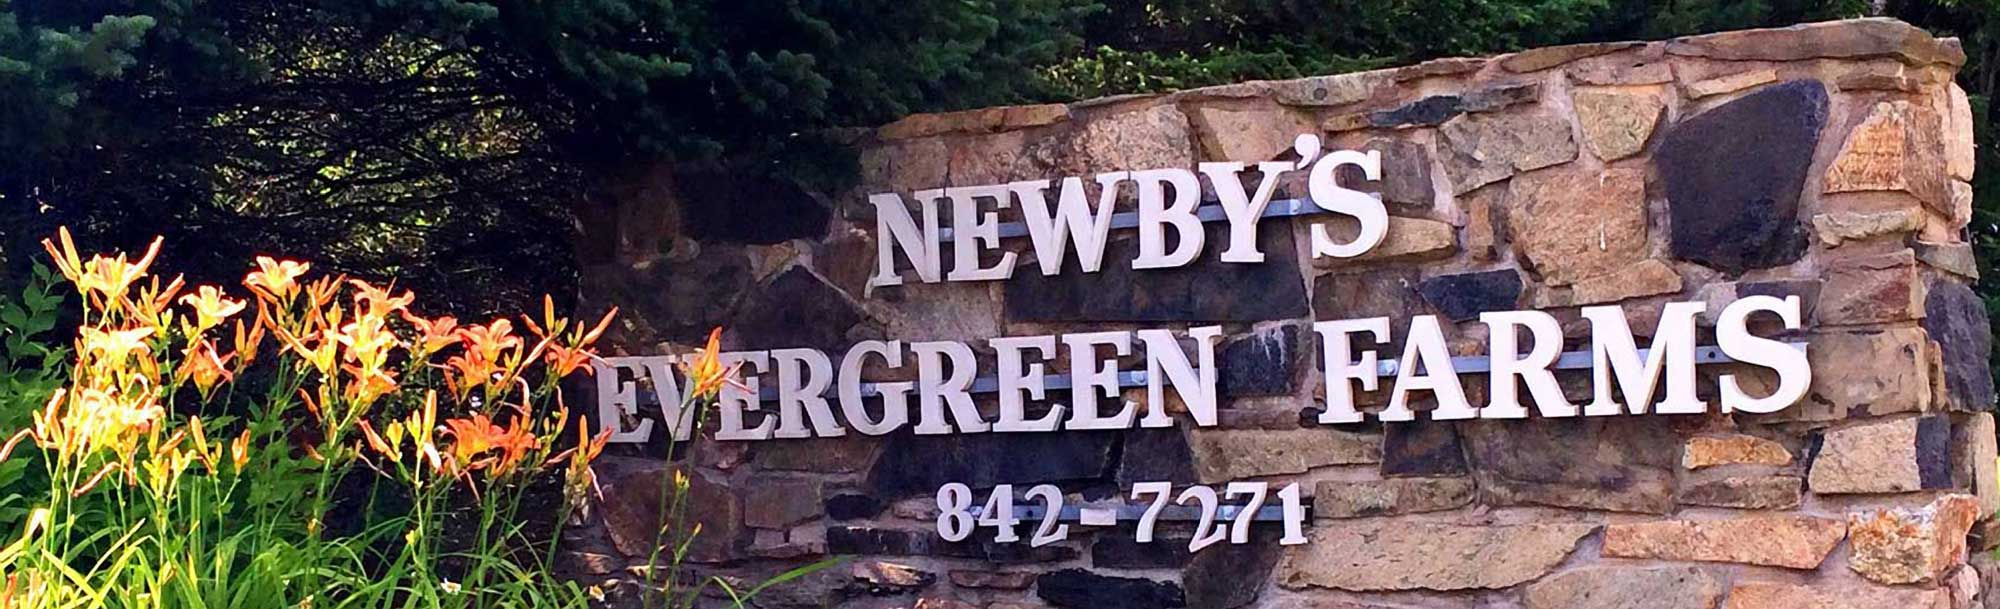 Newby's Evergreen Farms